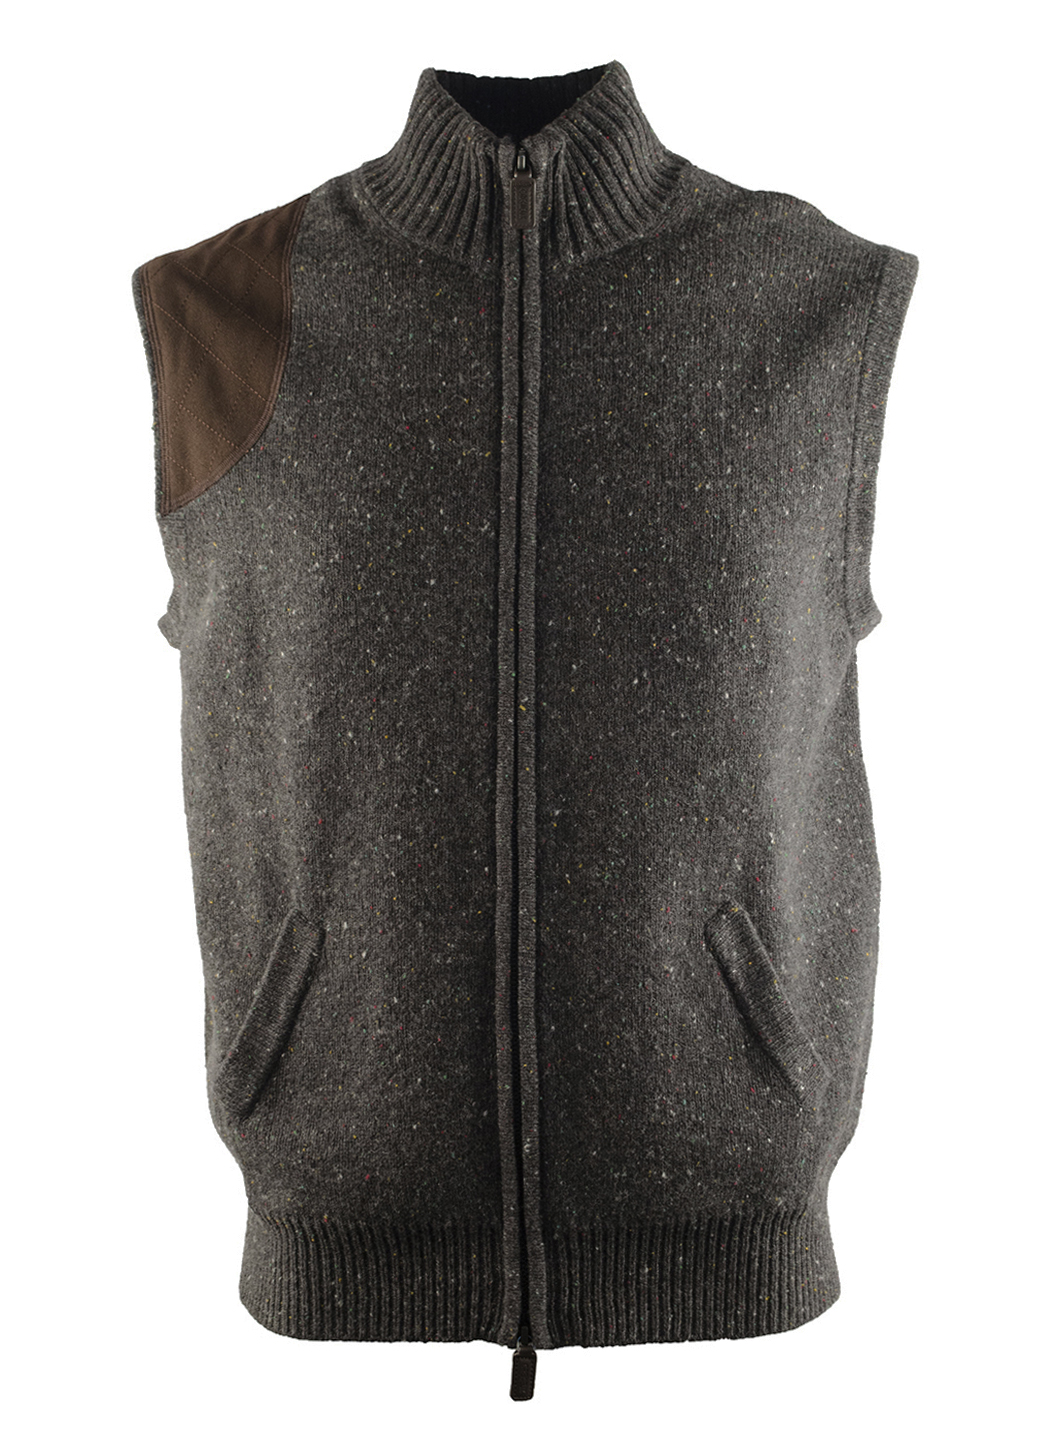 Cremieux Mens Gray Suede Leather Wool Zip up Sweater Sleeveless ...